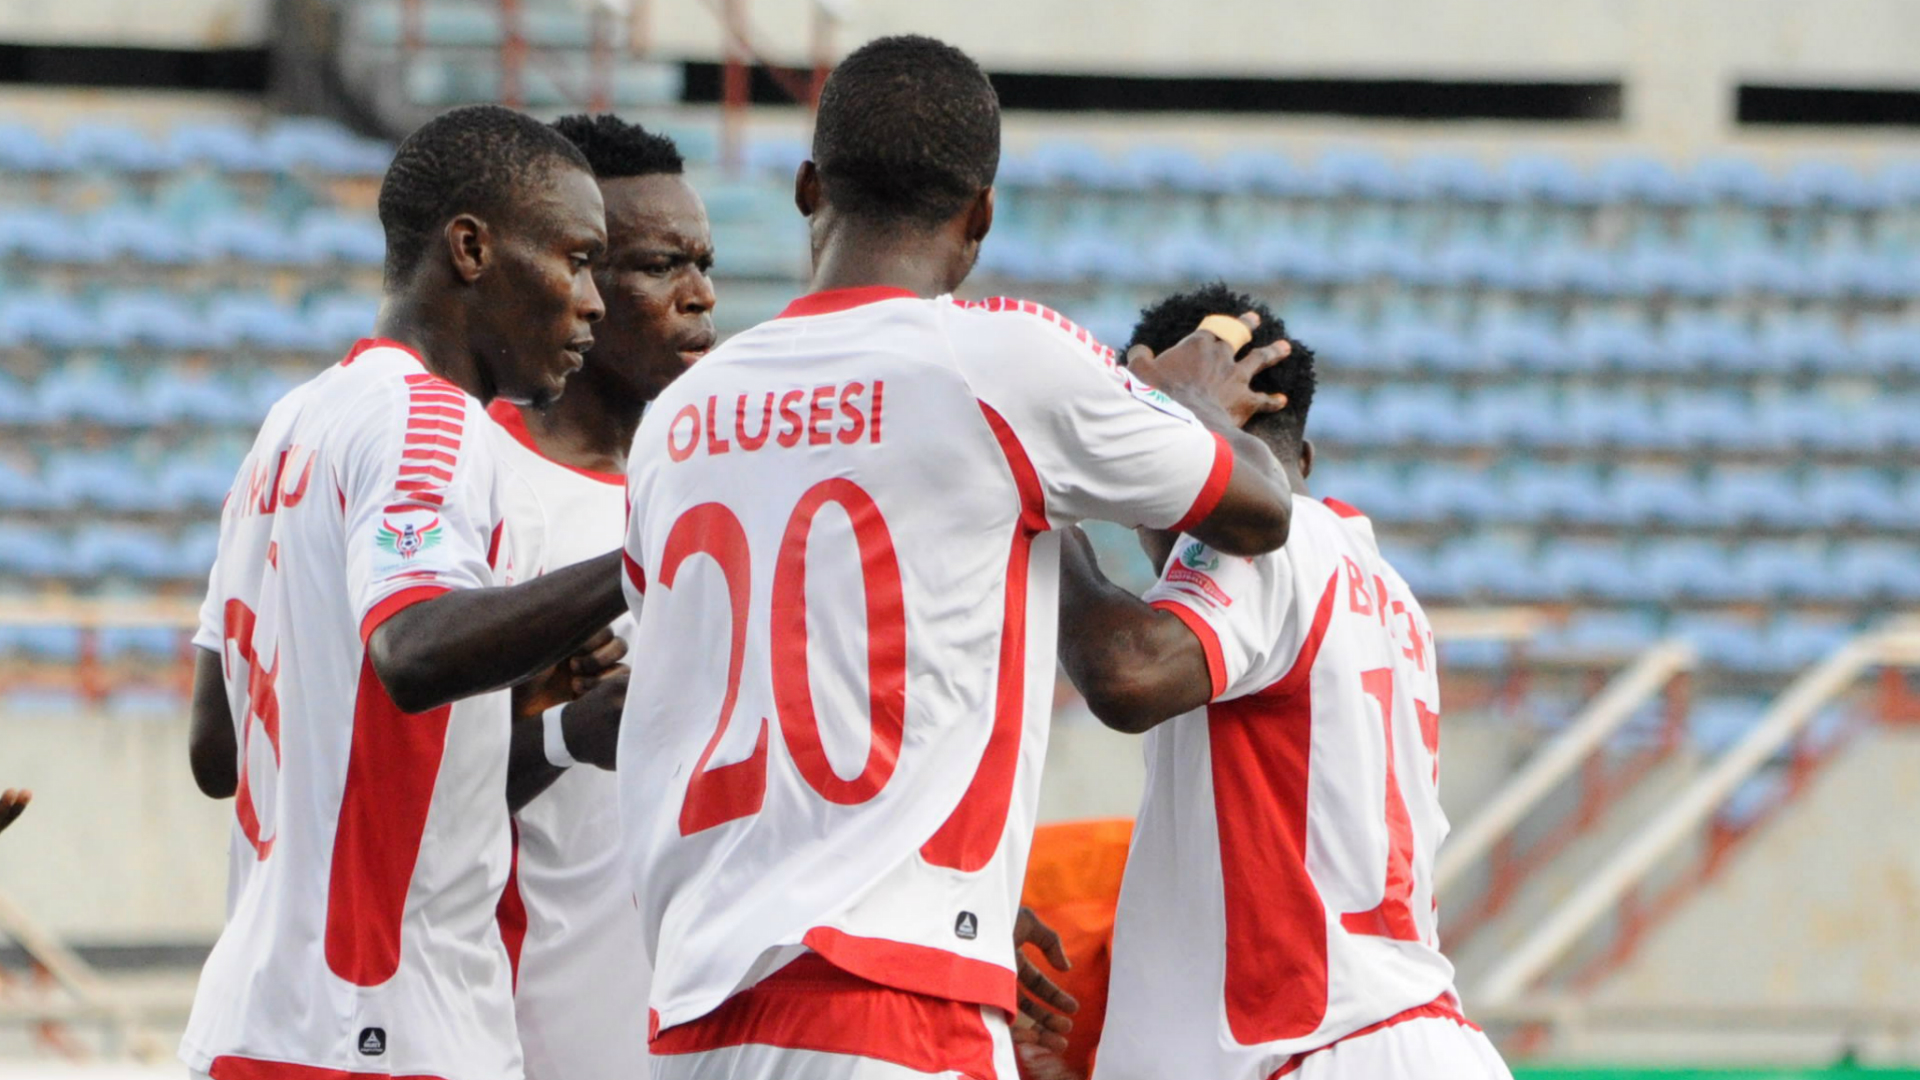 Rangers captain Olusesi predicts NPFL winner for the current season